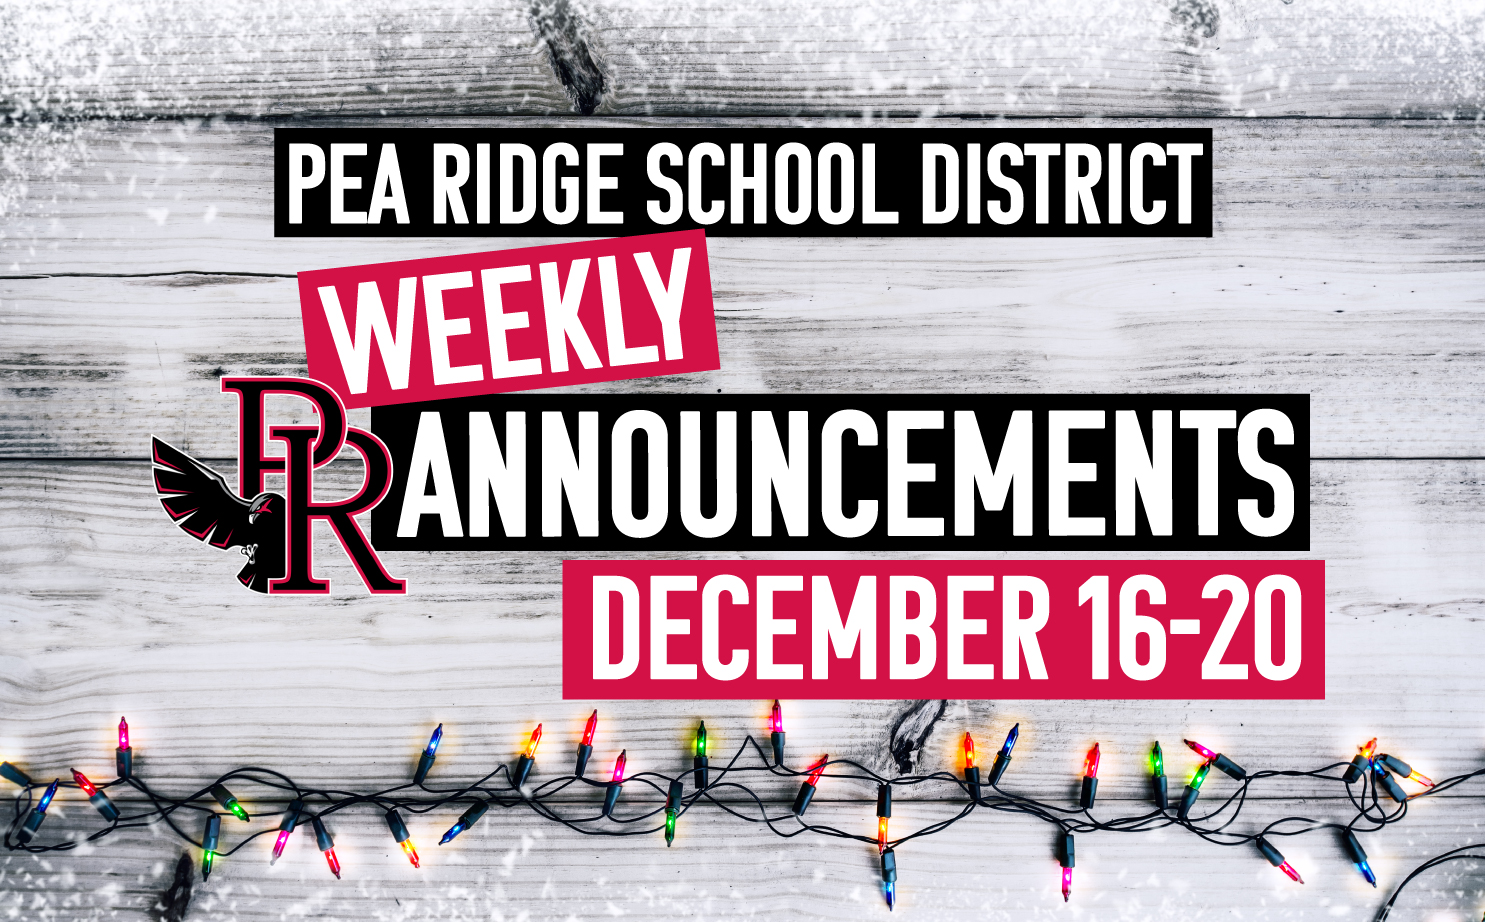 Weekly Announcements Dec. 16-20